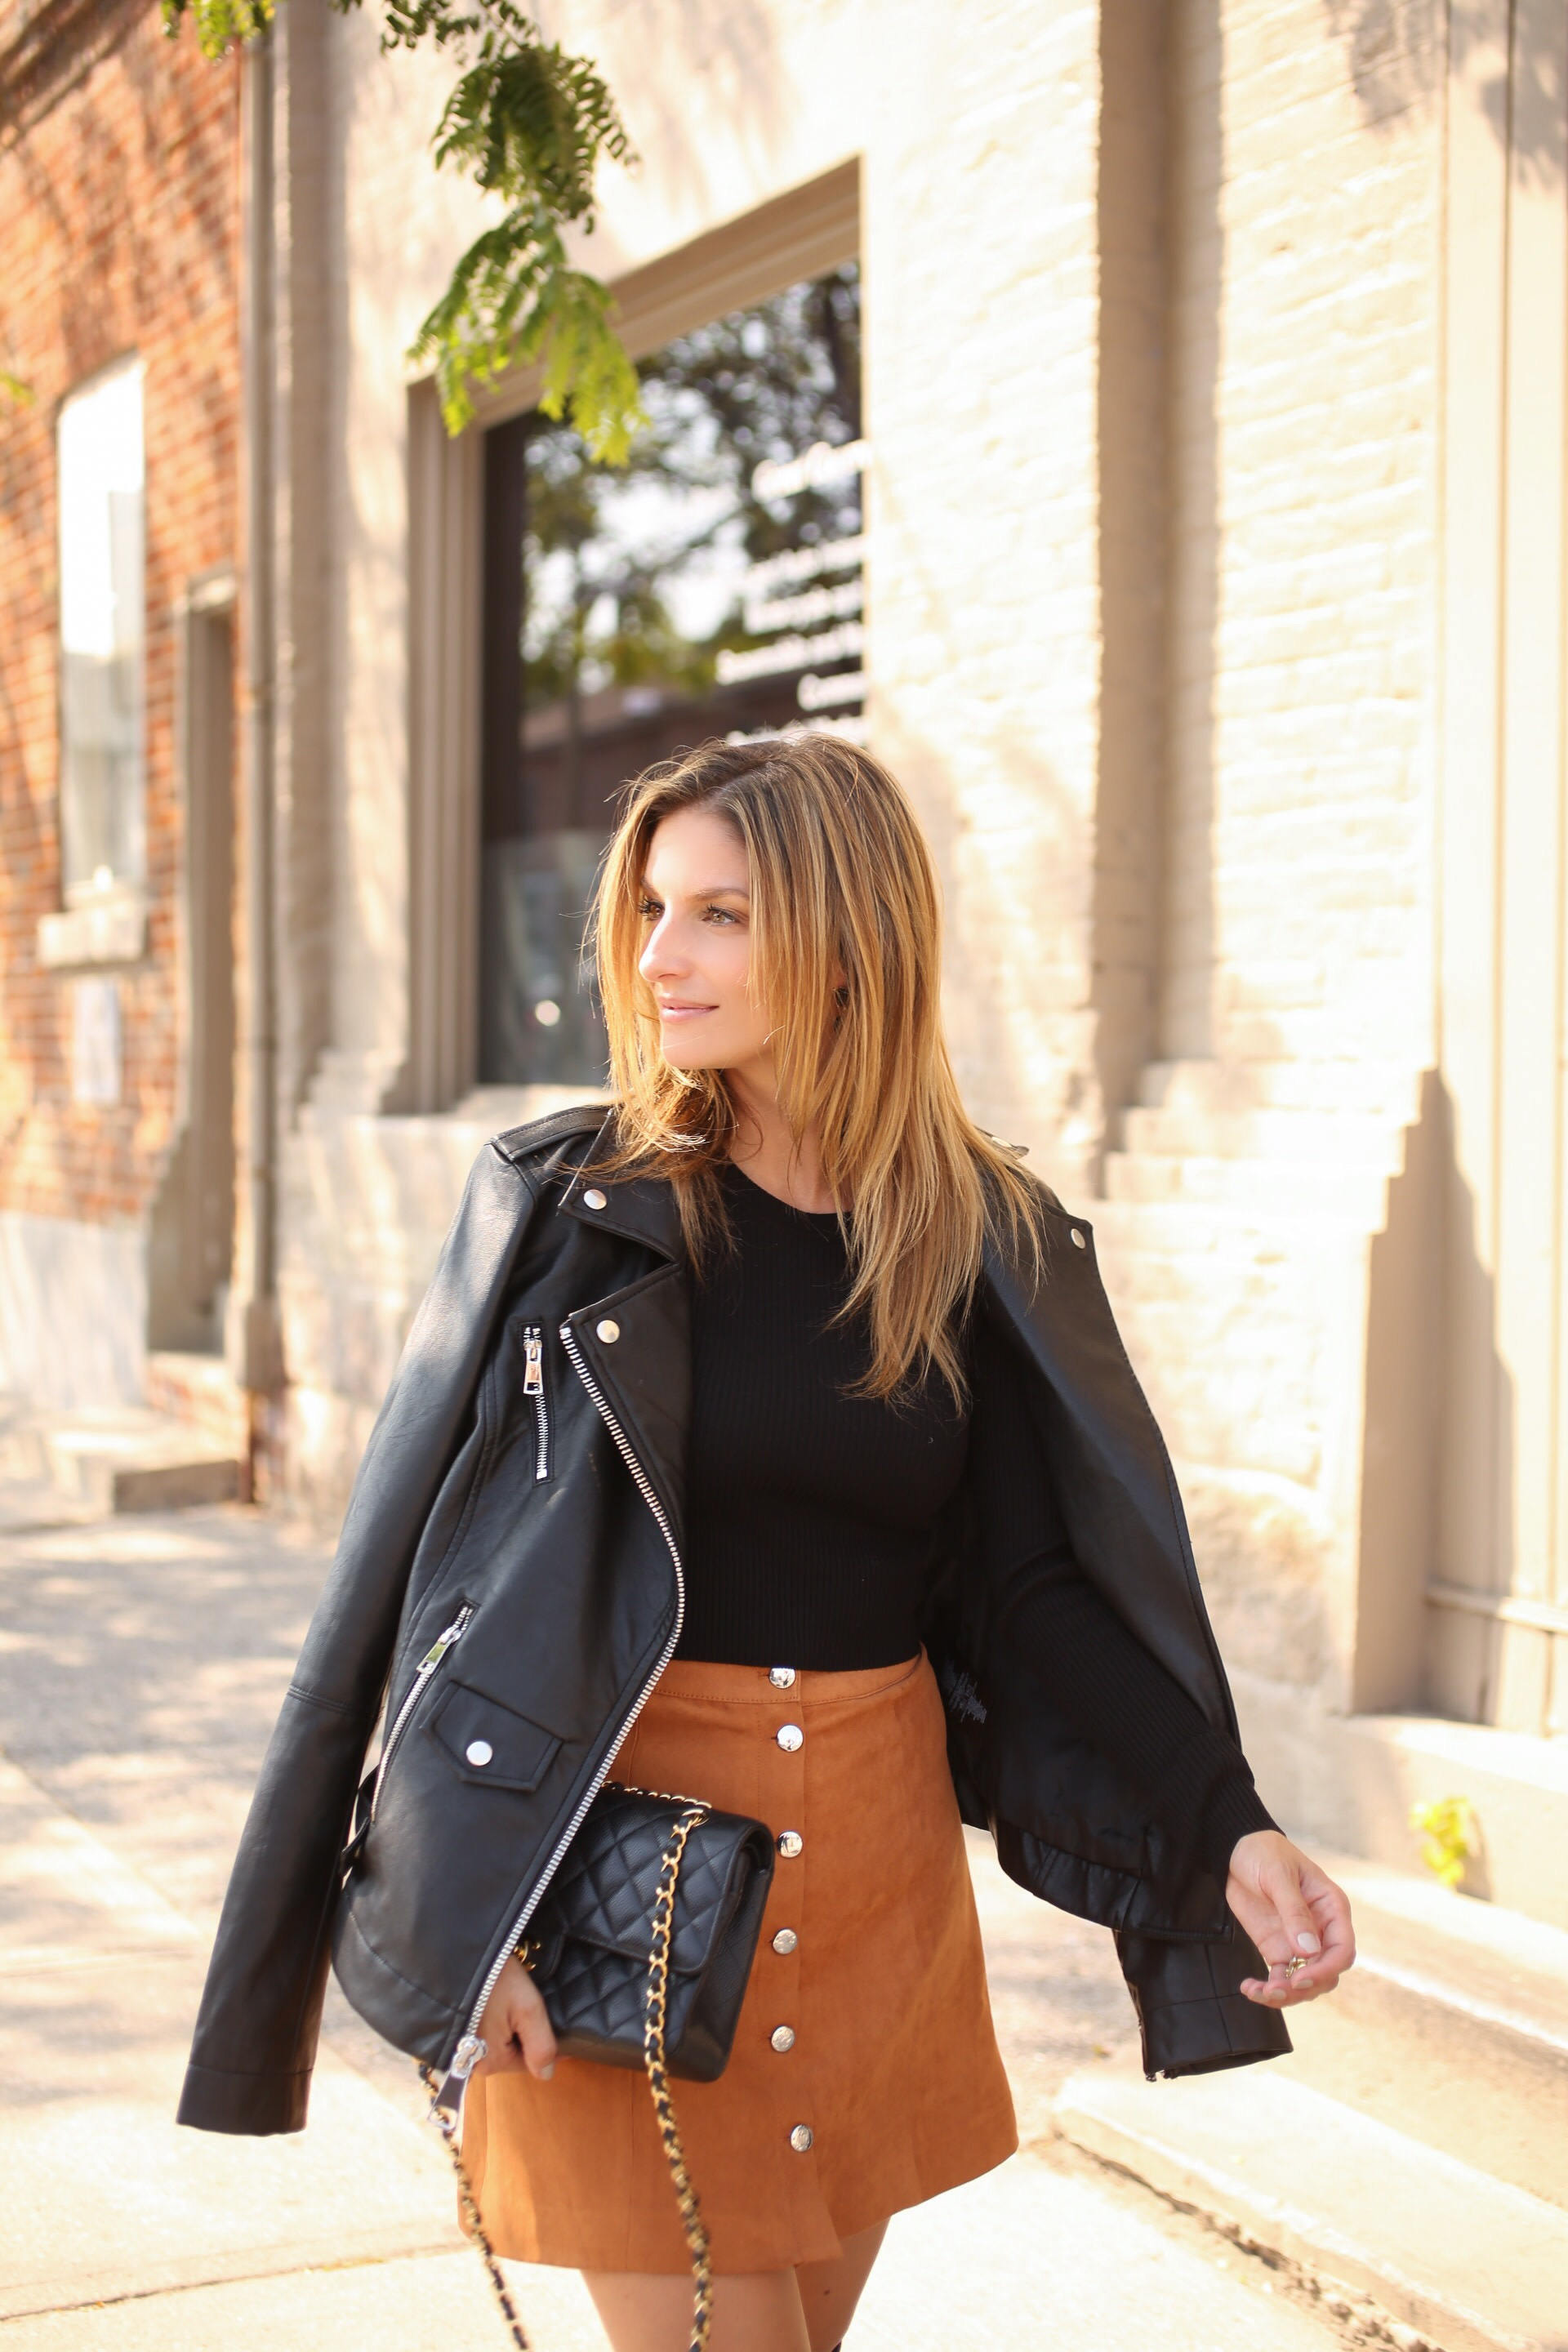 leather jacket and suede skirt